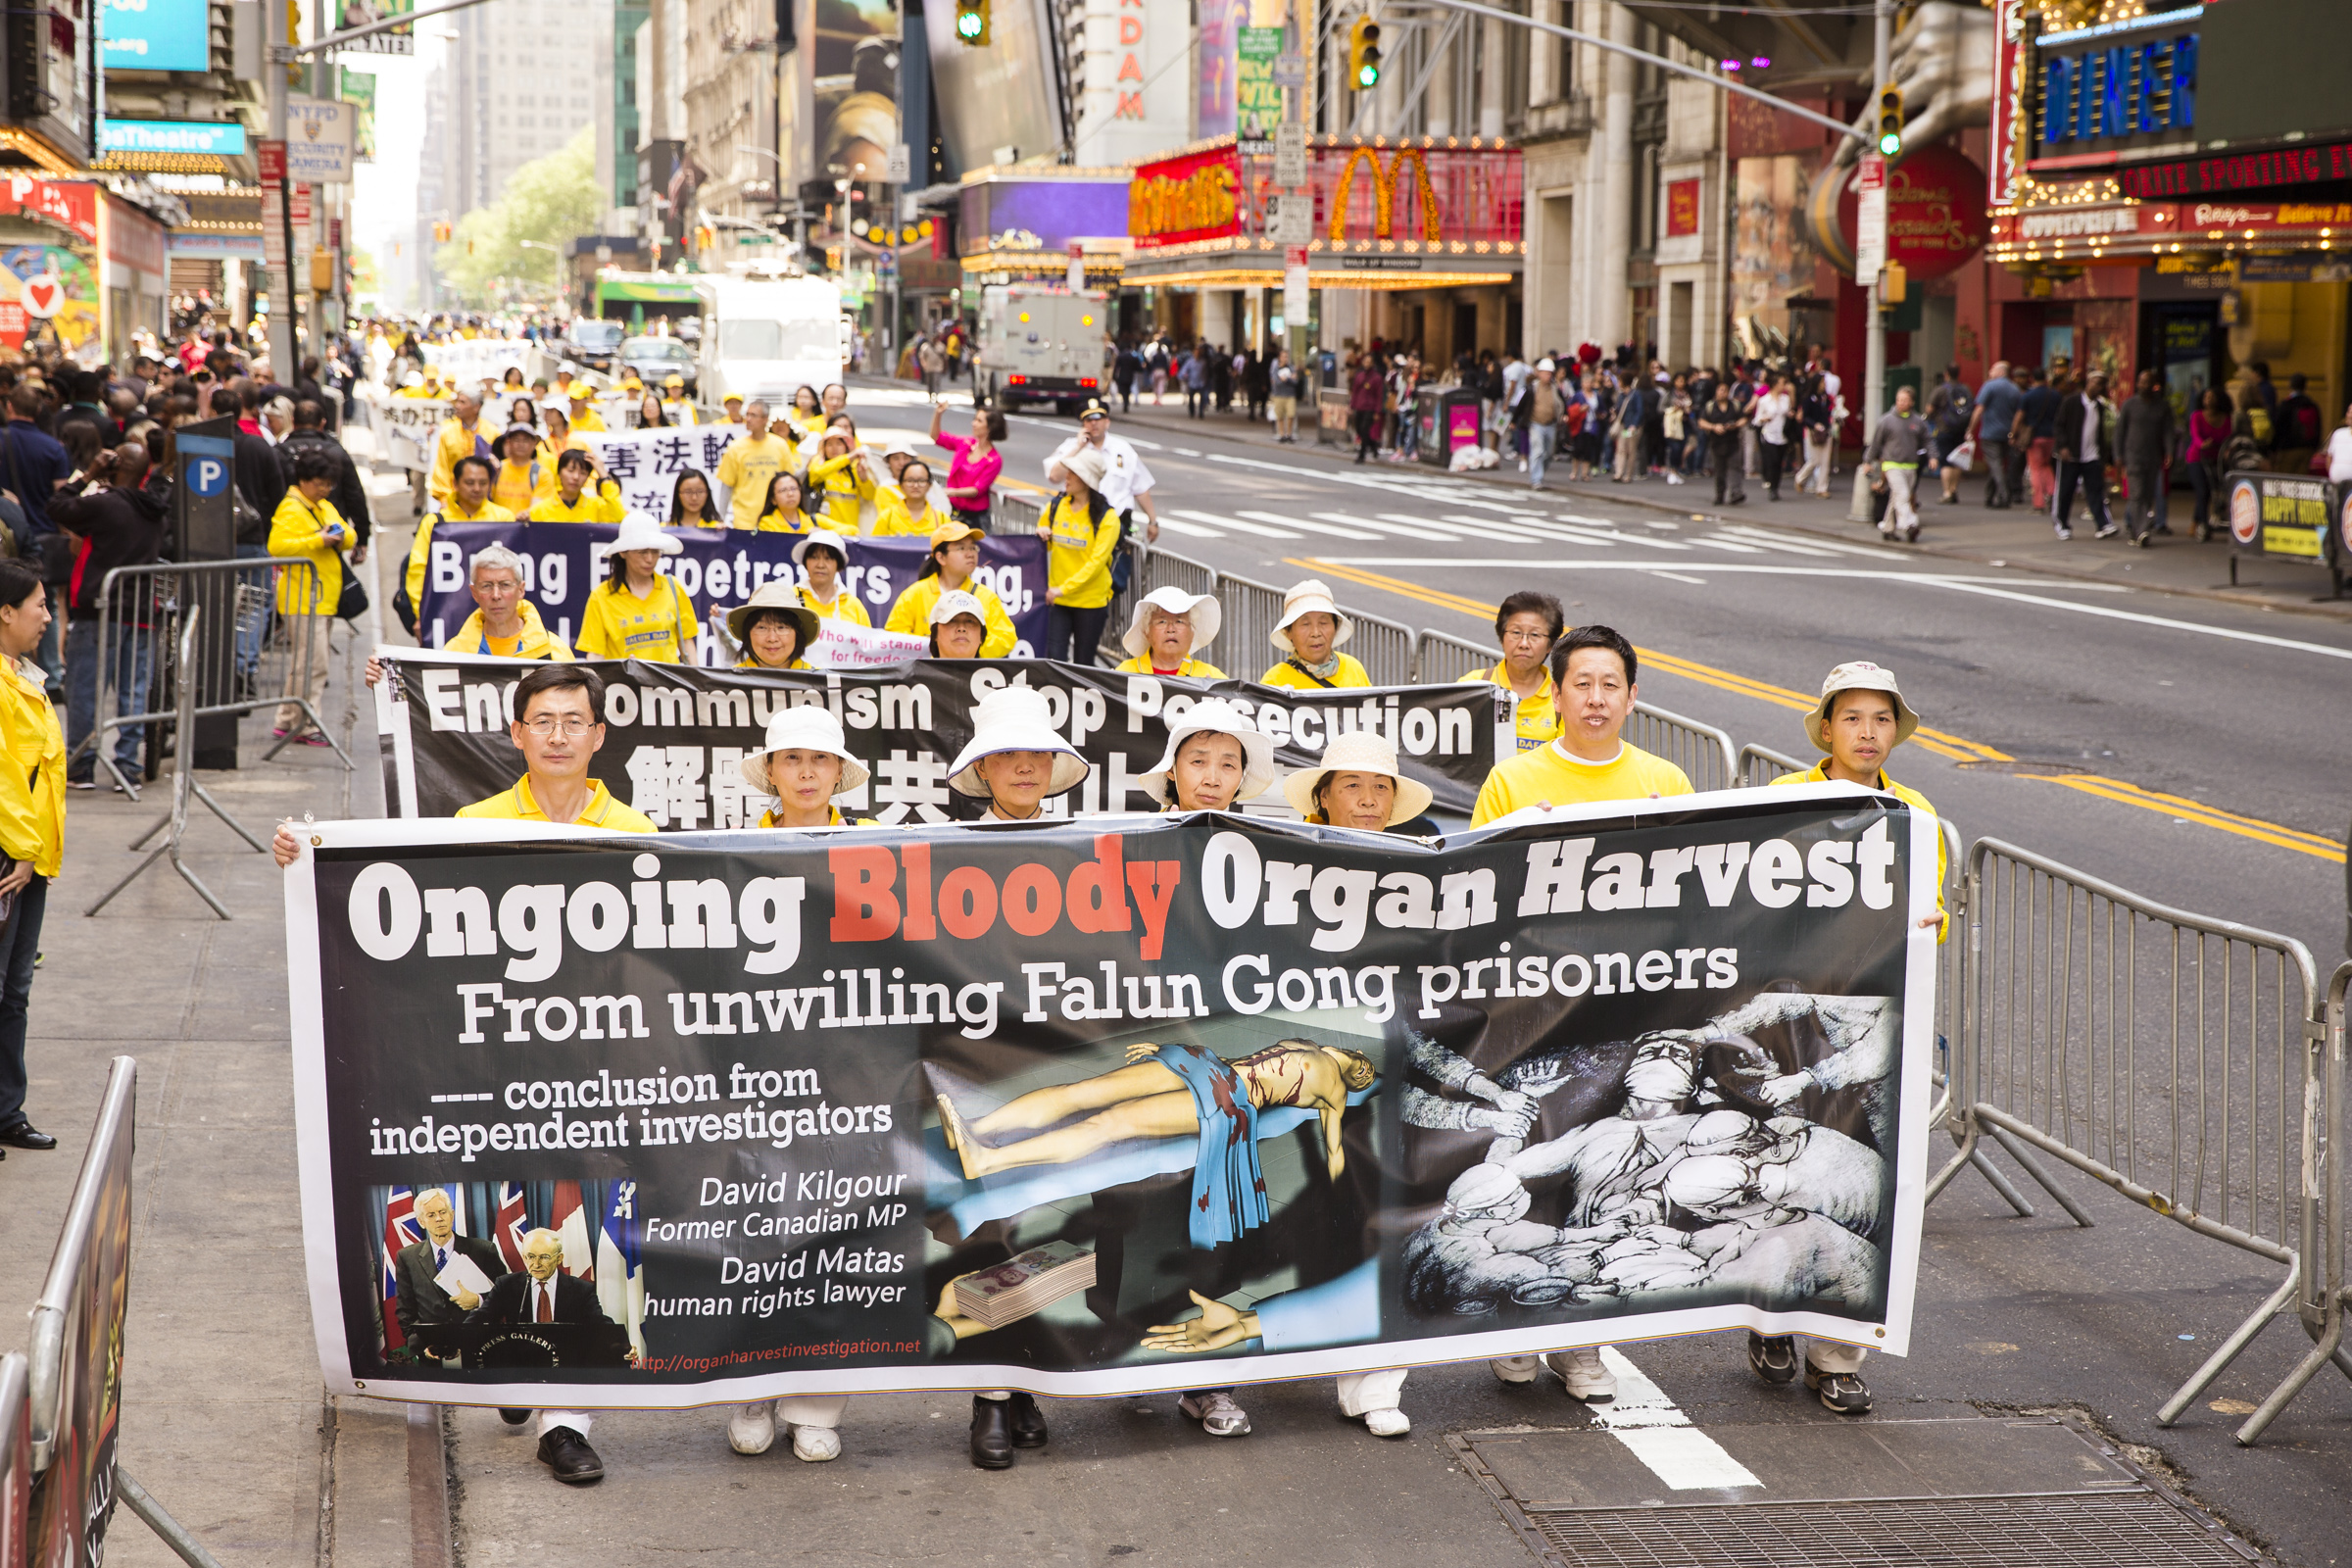 Falun Gong practitioners hold a banner in reference to organ harvesting of practitioners that is still happening today inside China. (Edward Dai/Epoch Times)